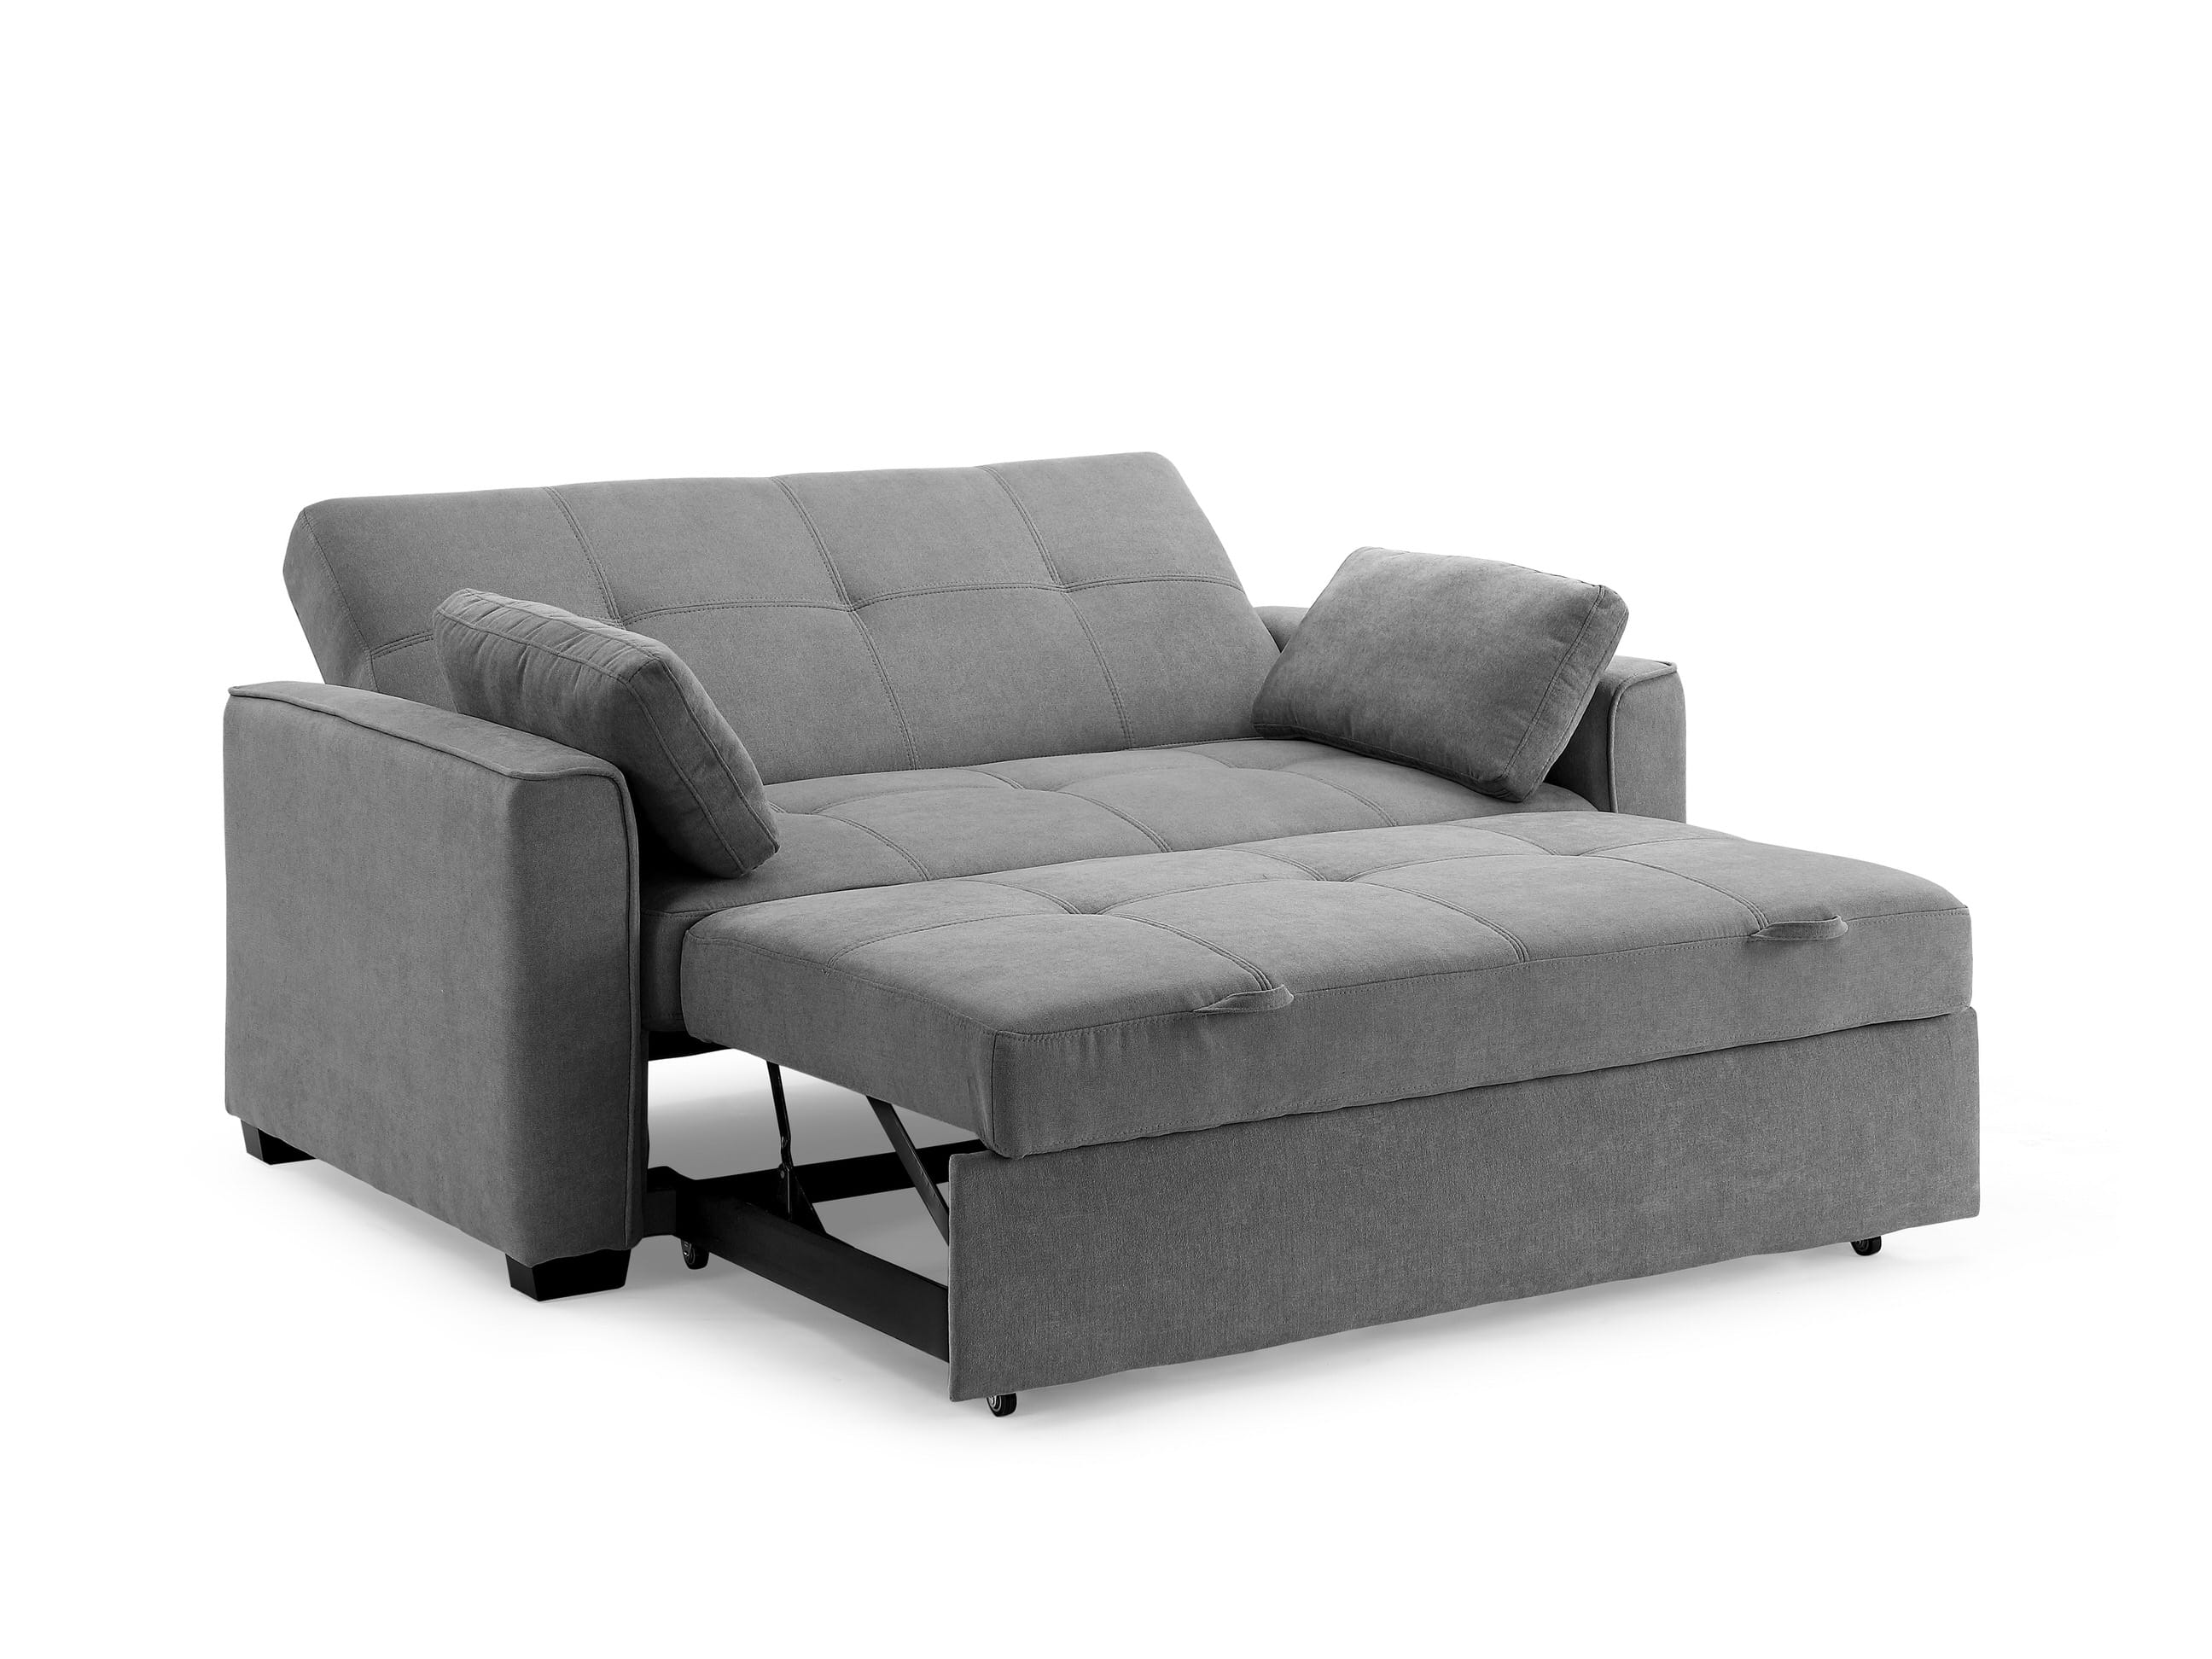 Nantucket Loveseat Full Size Sleeper